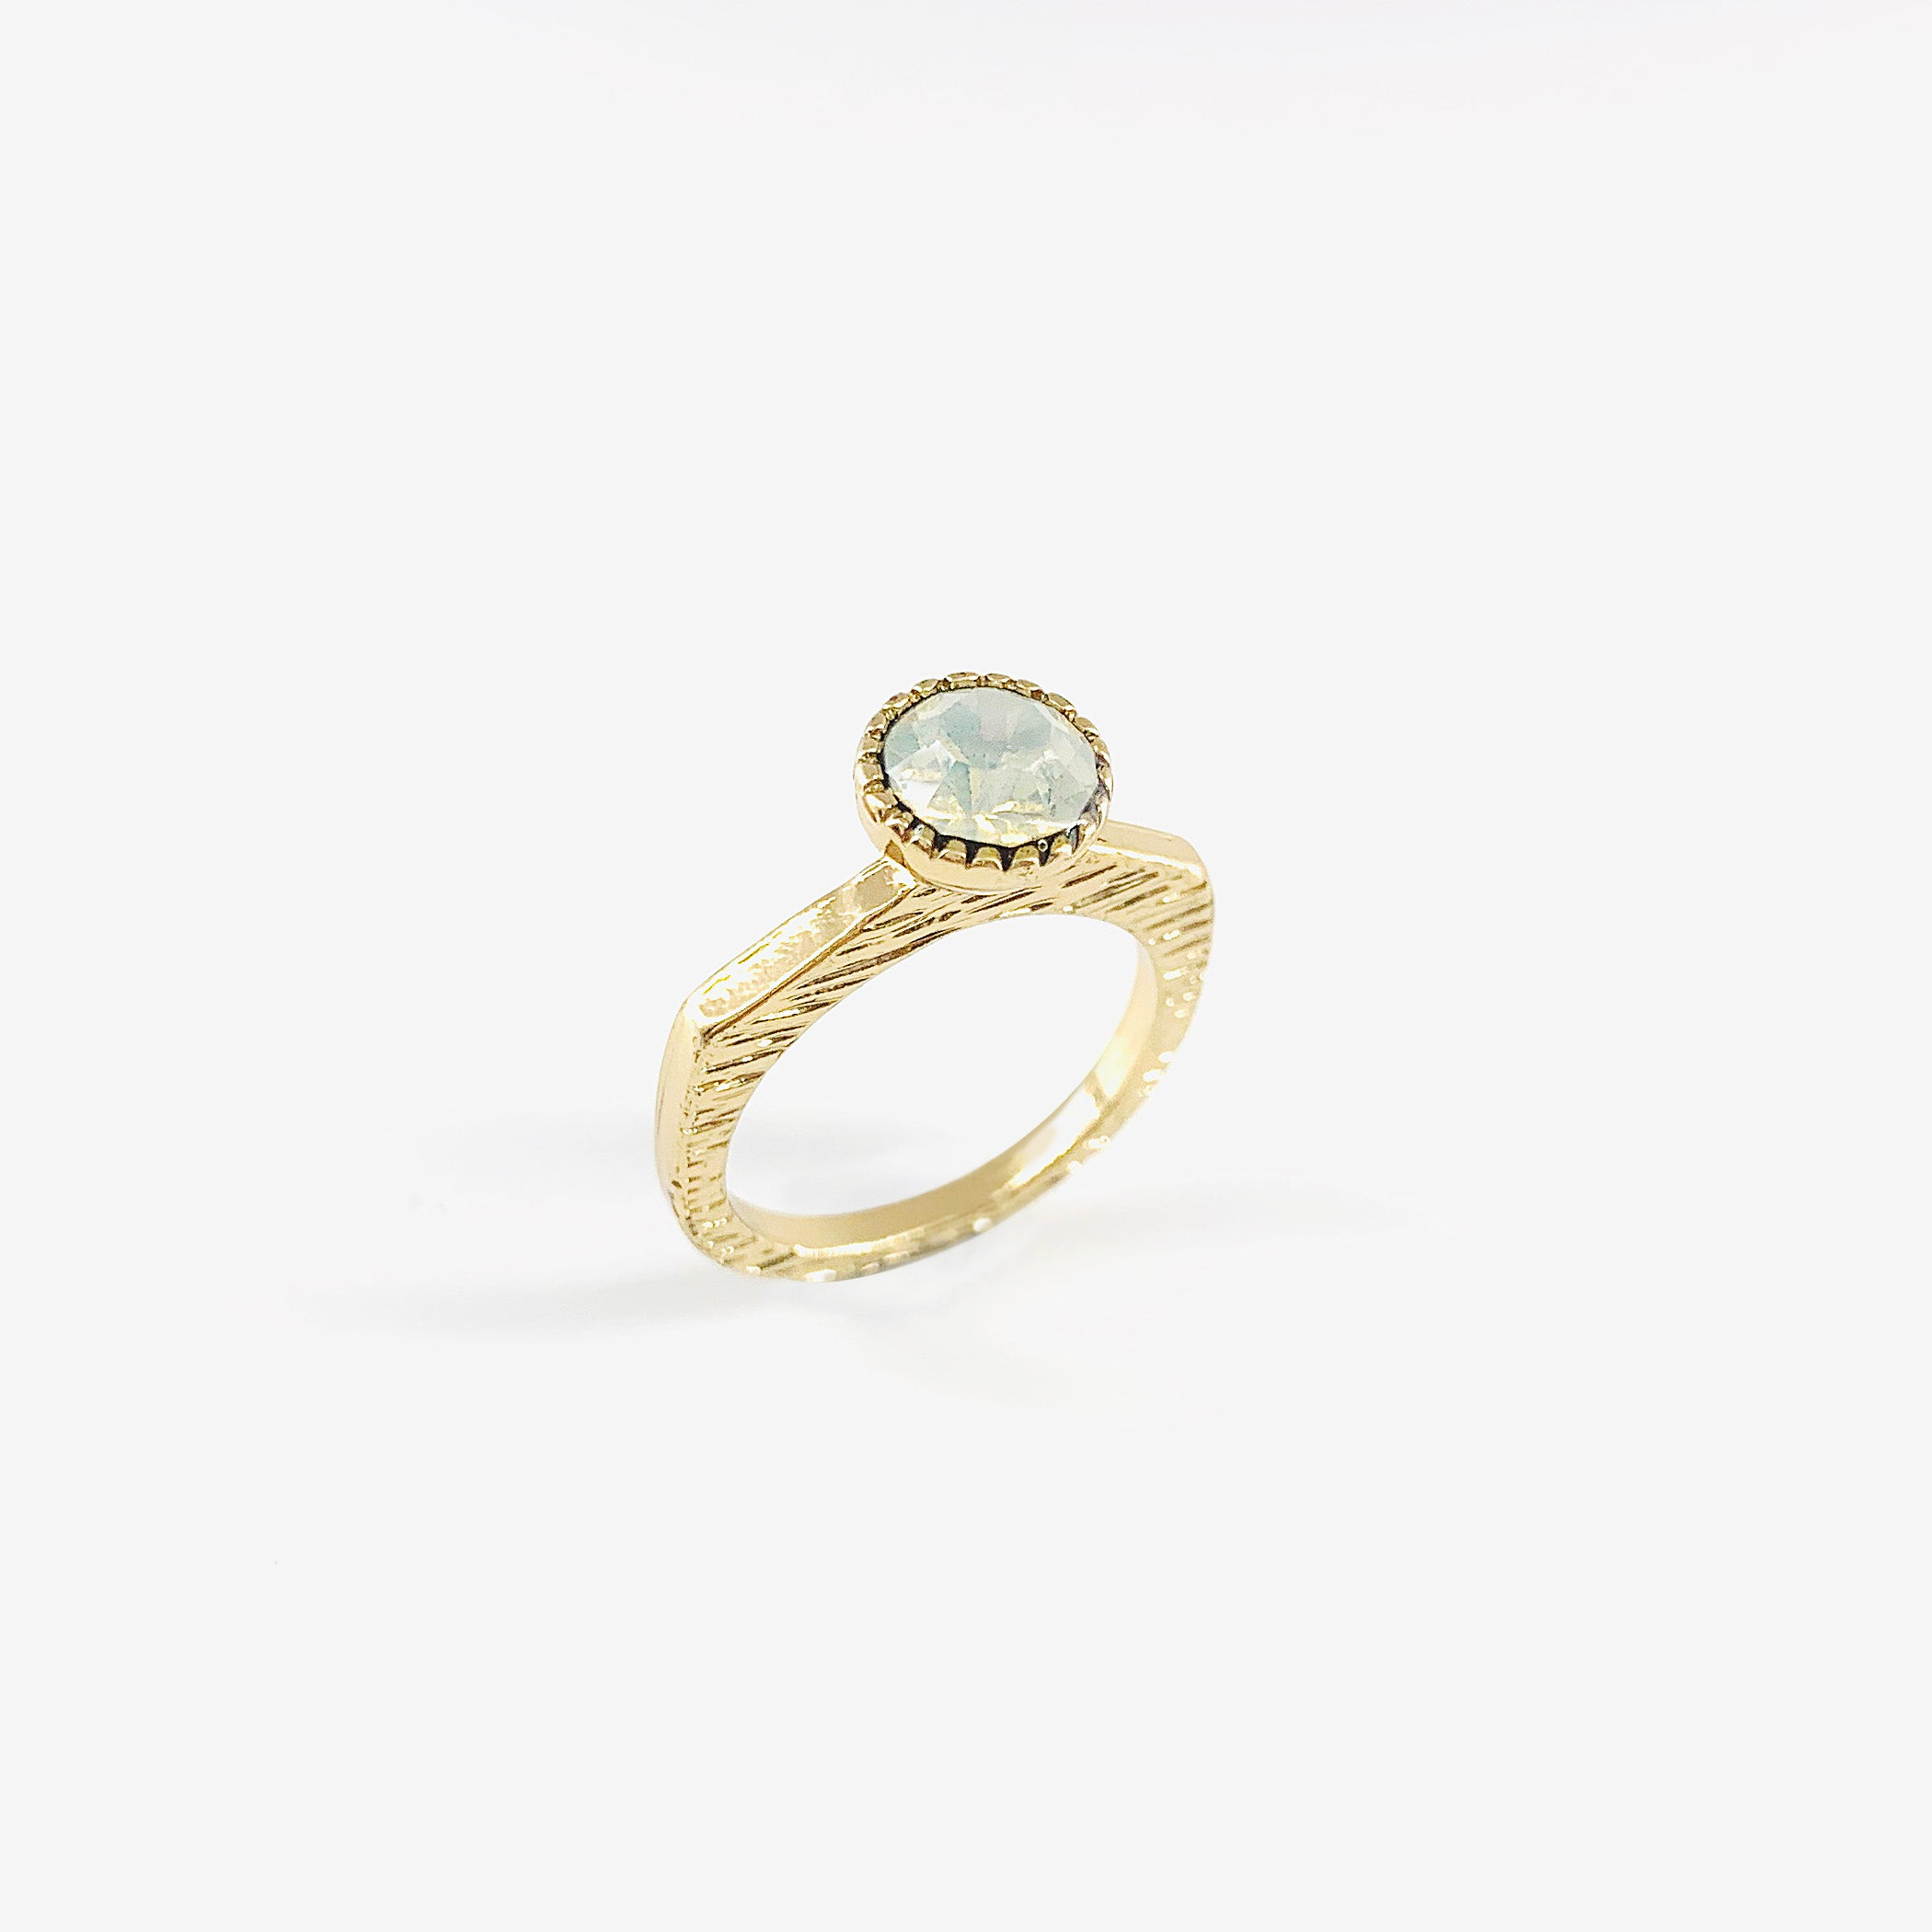 Textured gold ring with white stone